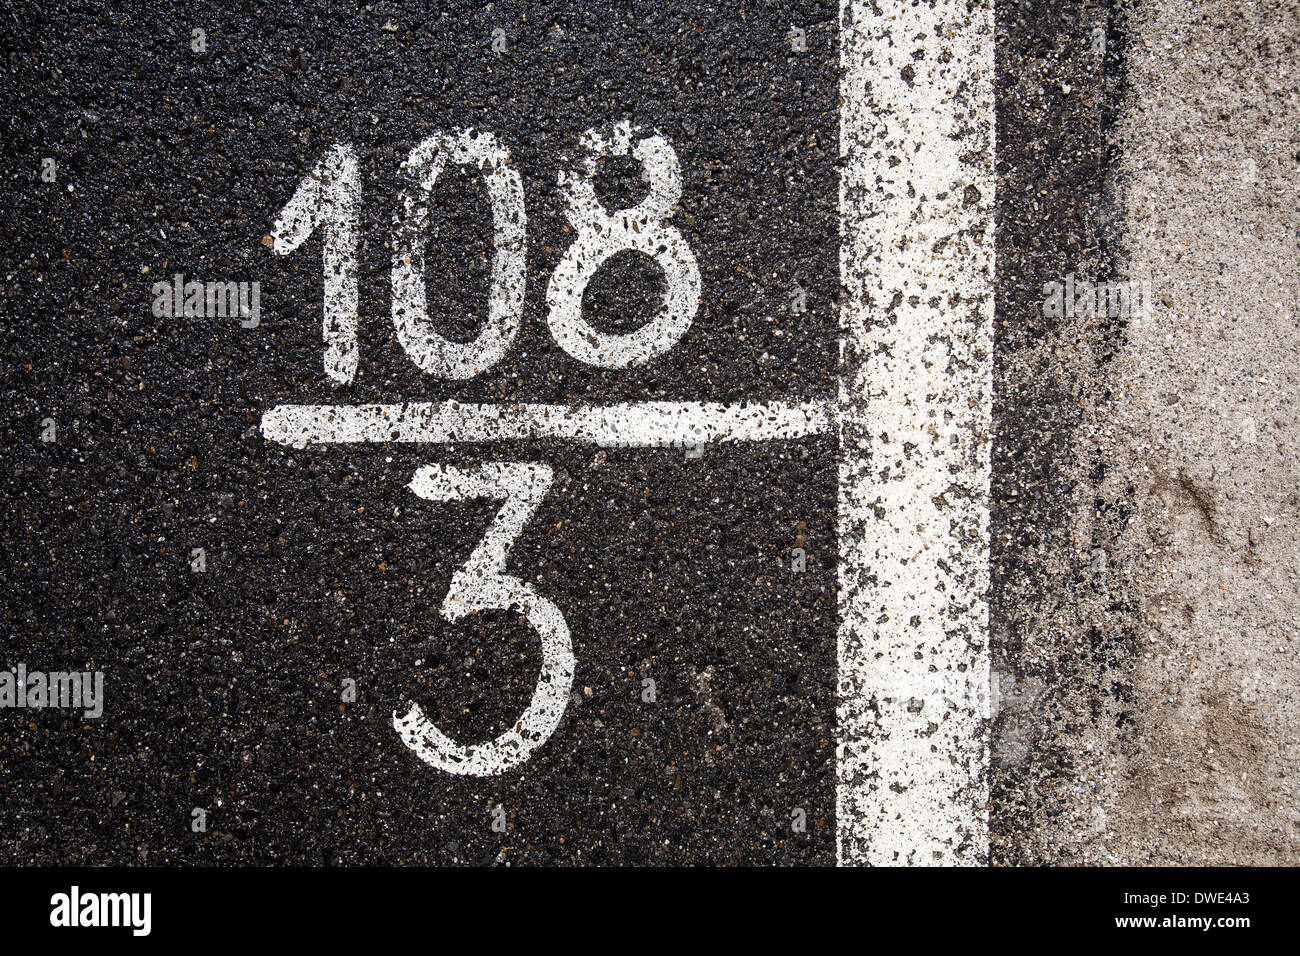 White numbers and digits on the black asphalt - Stock Image